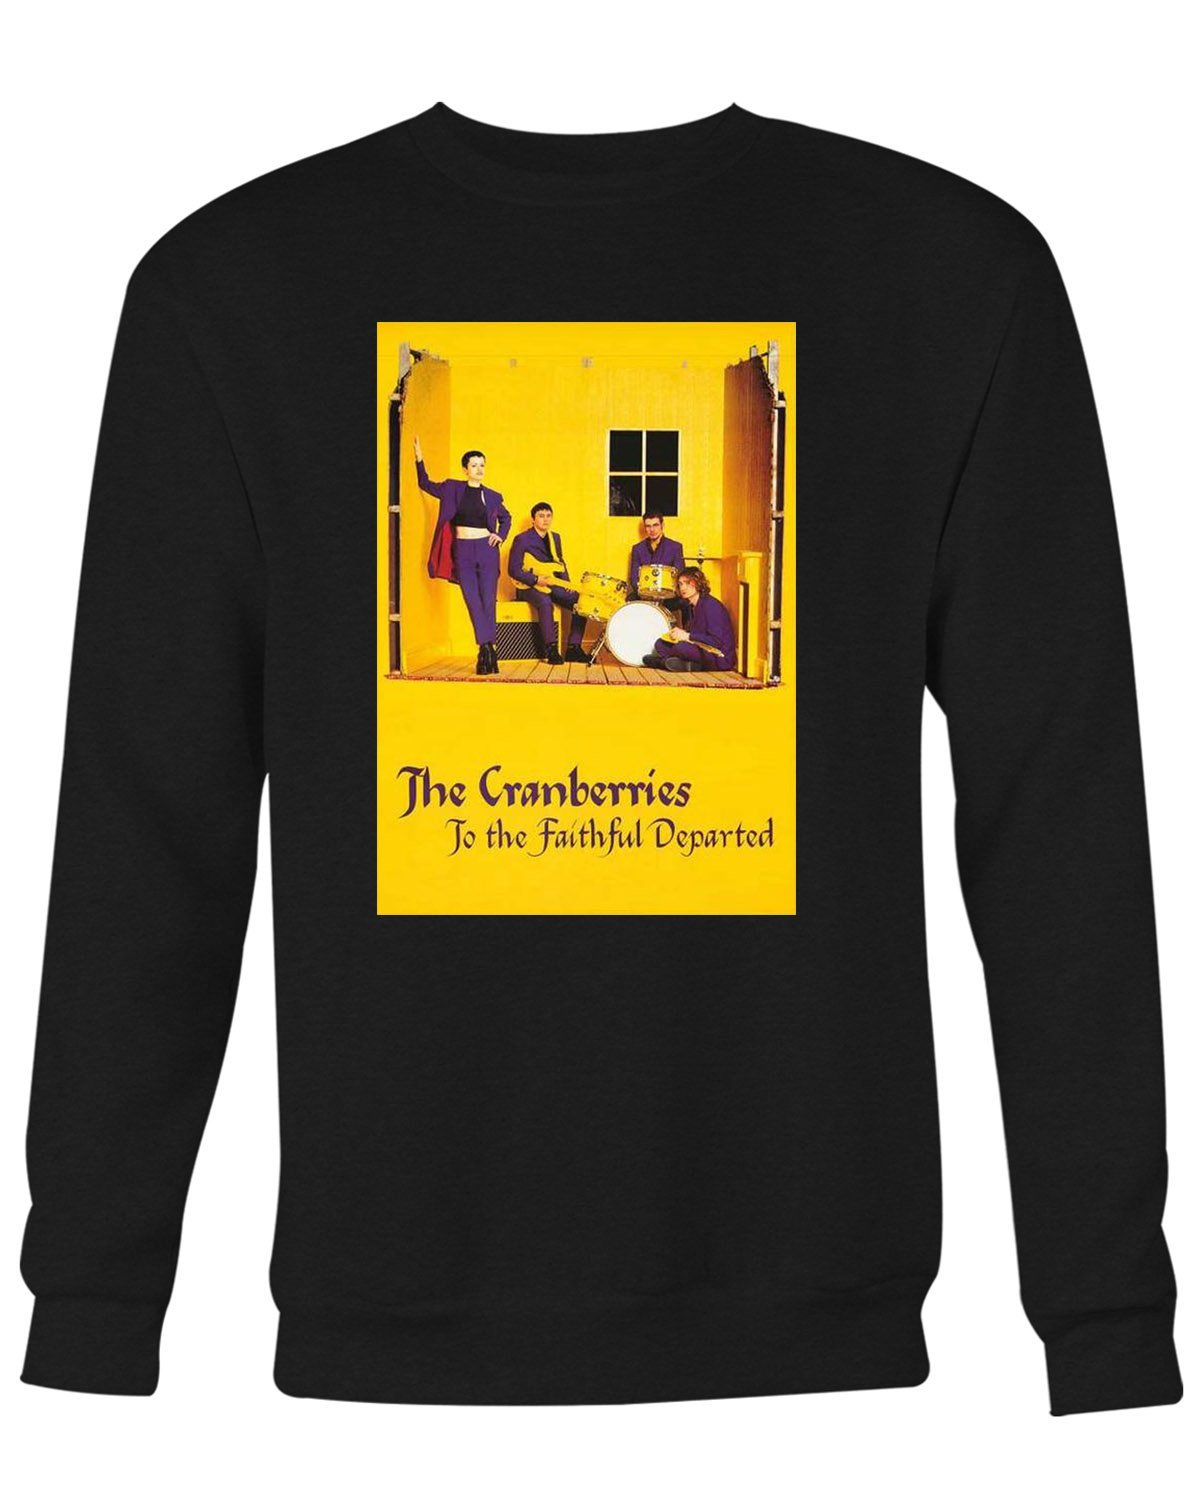 The Cranberries Faithful Departed Sweater Shirts